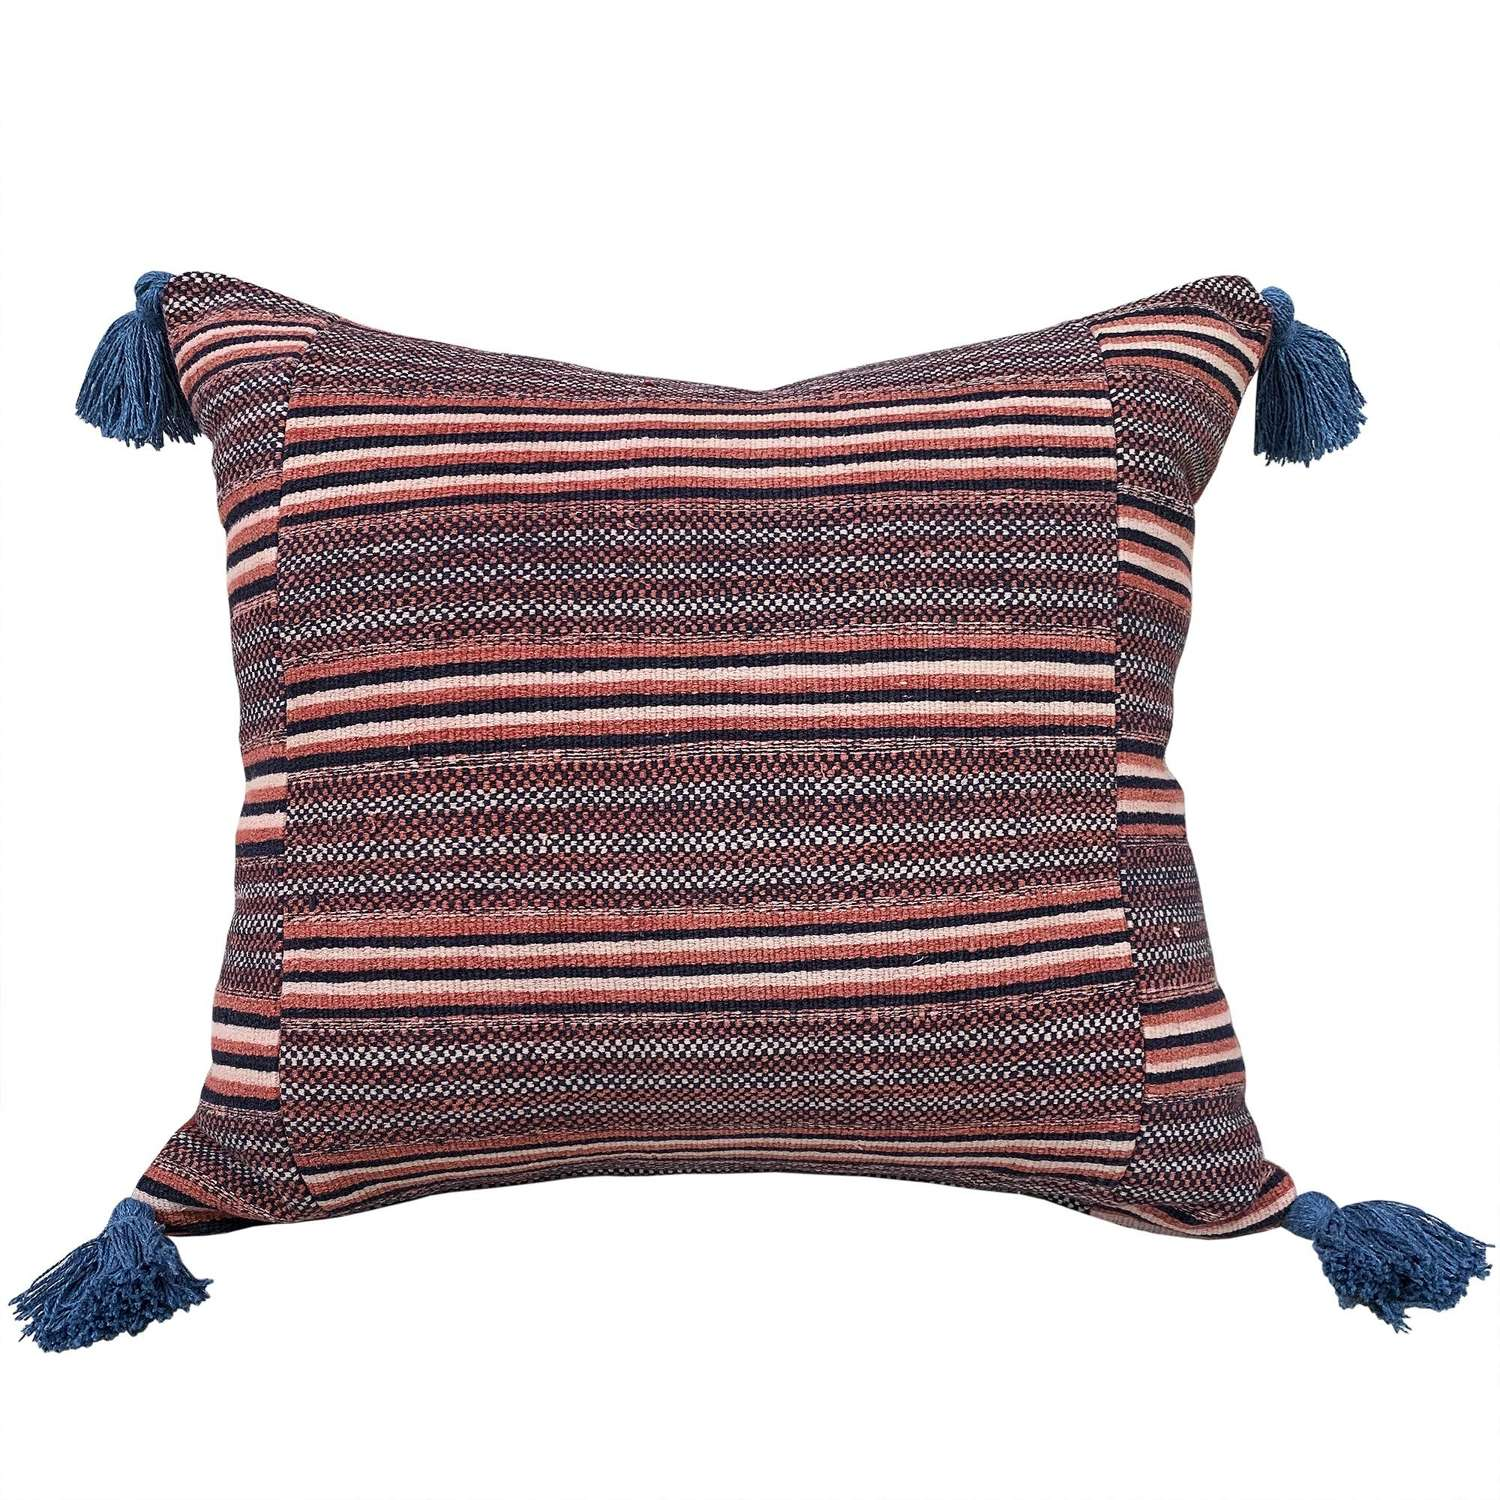 Rusty Zhuang striped cushion with tassels